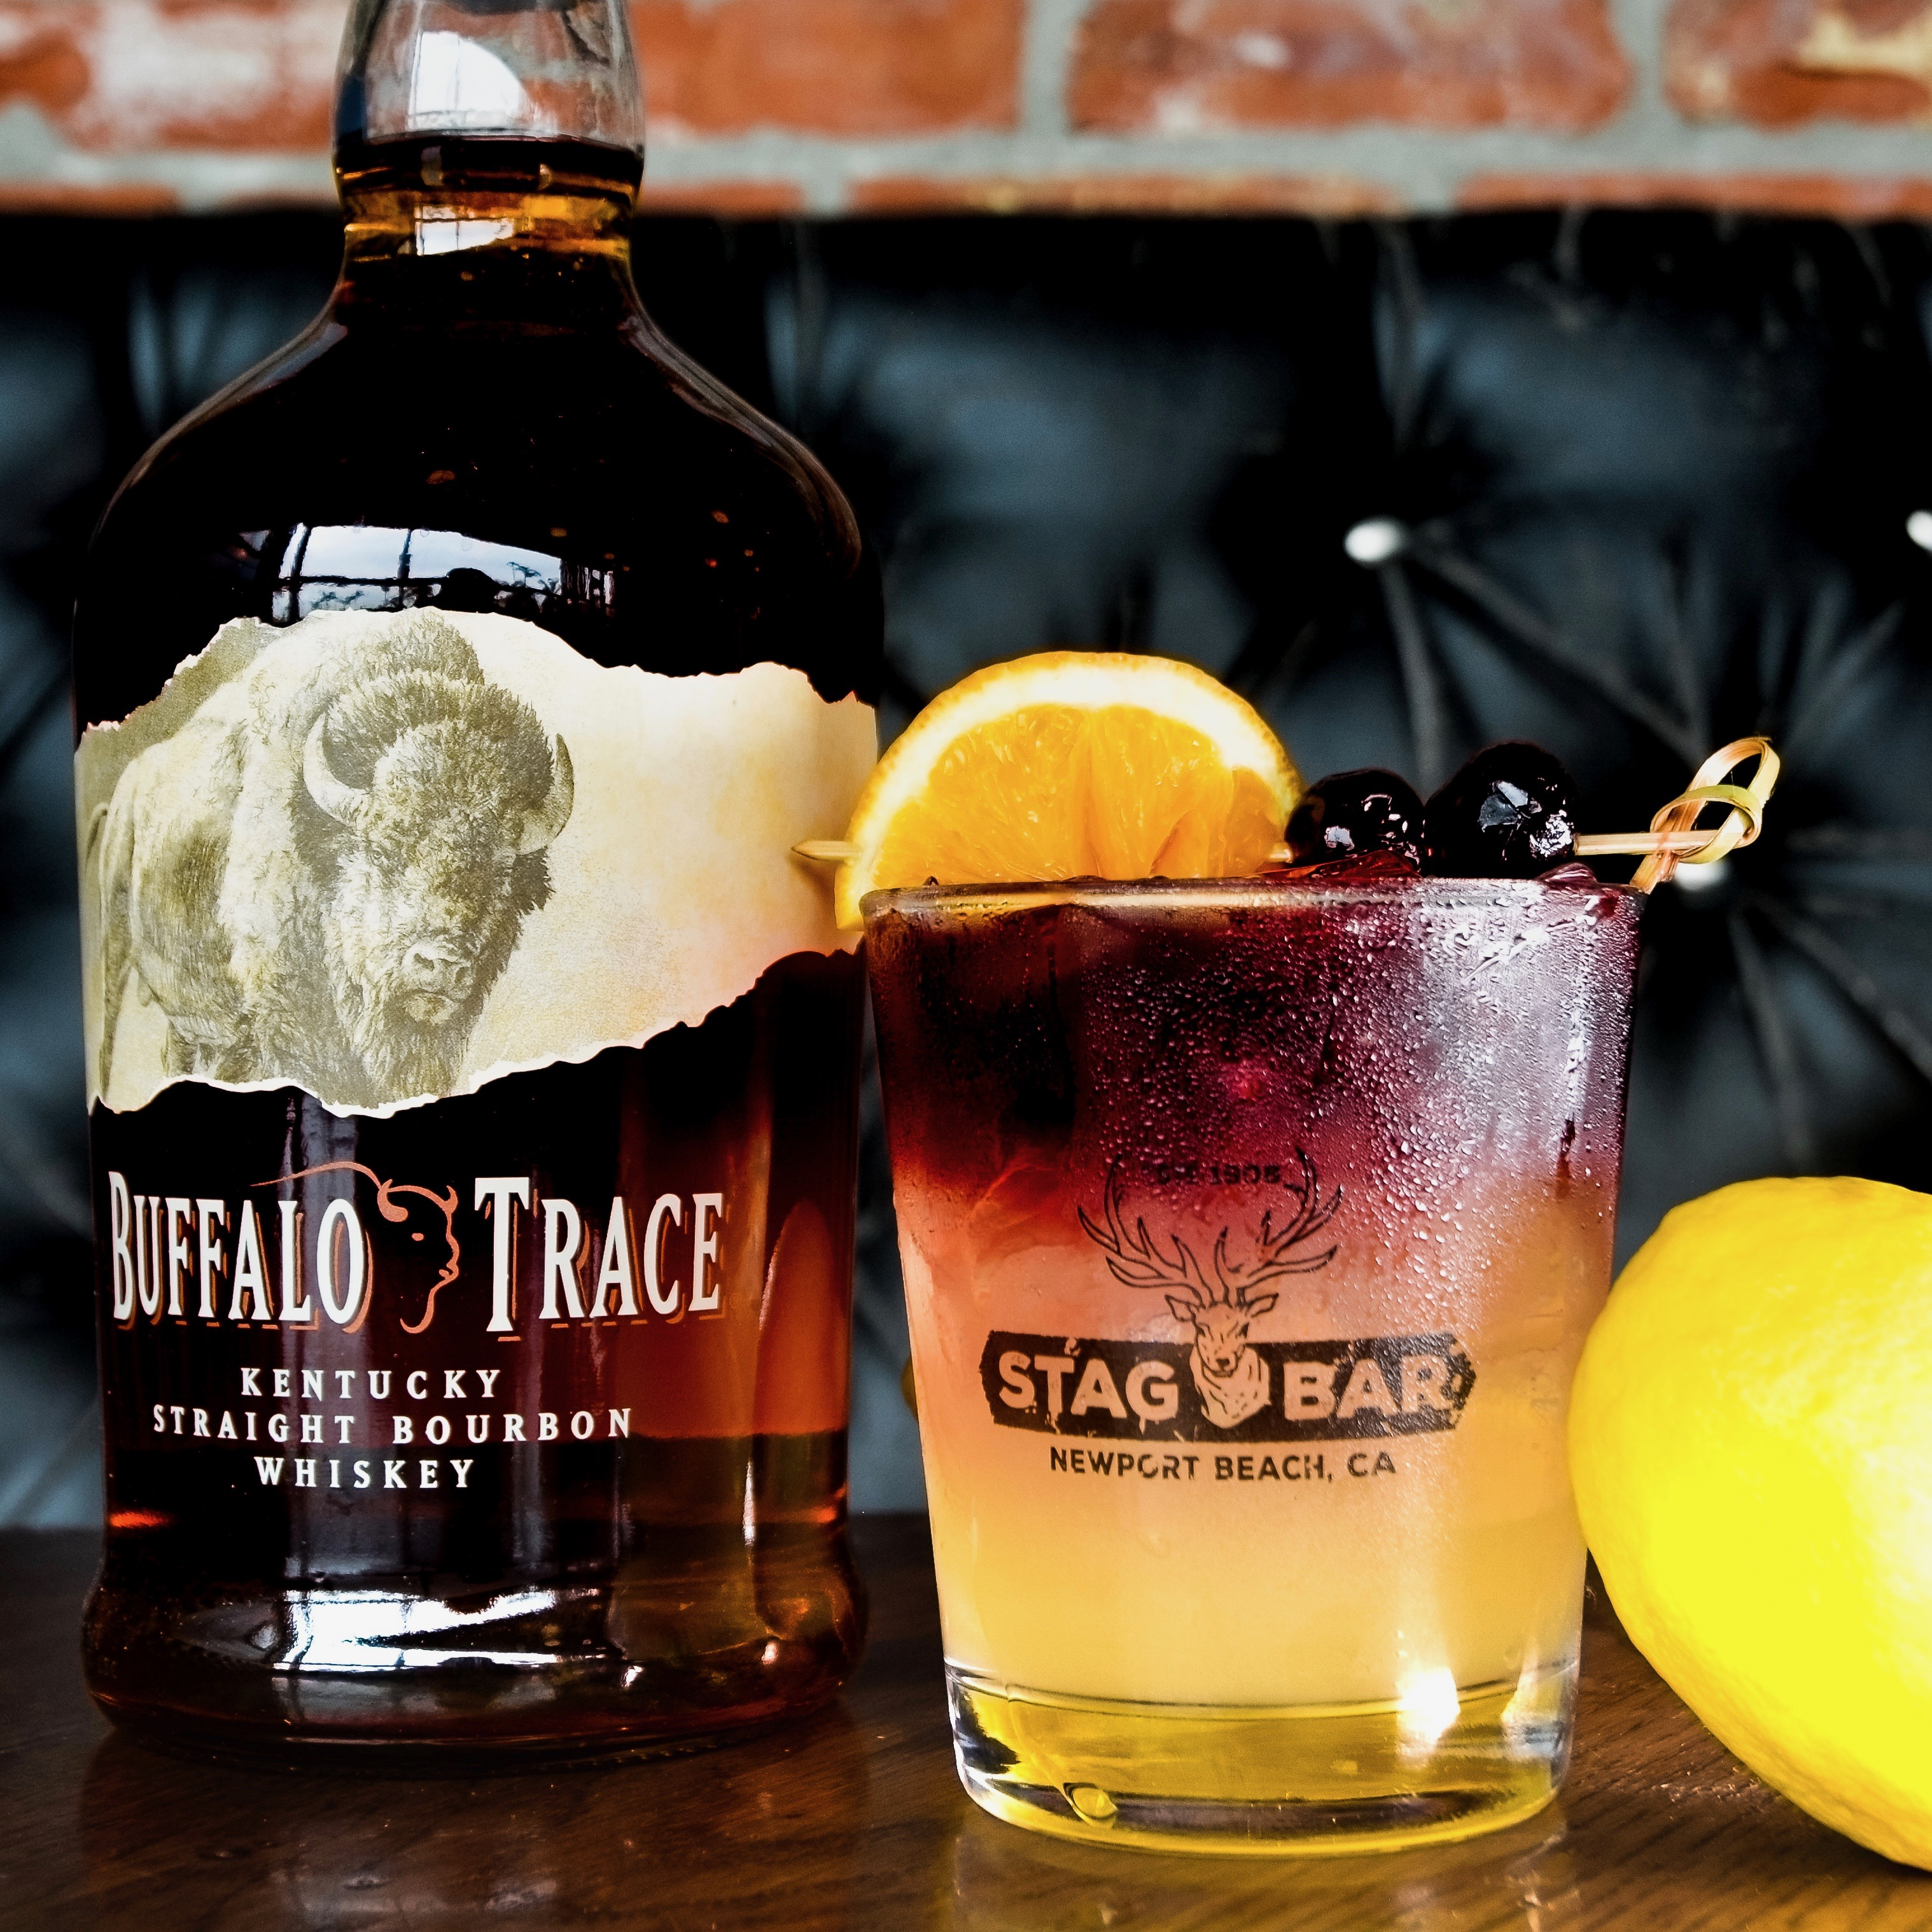 Try Stag Bar's New York Sour